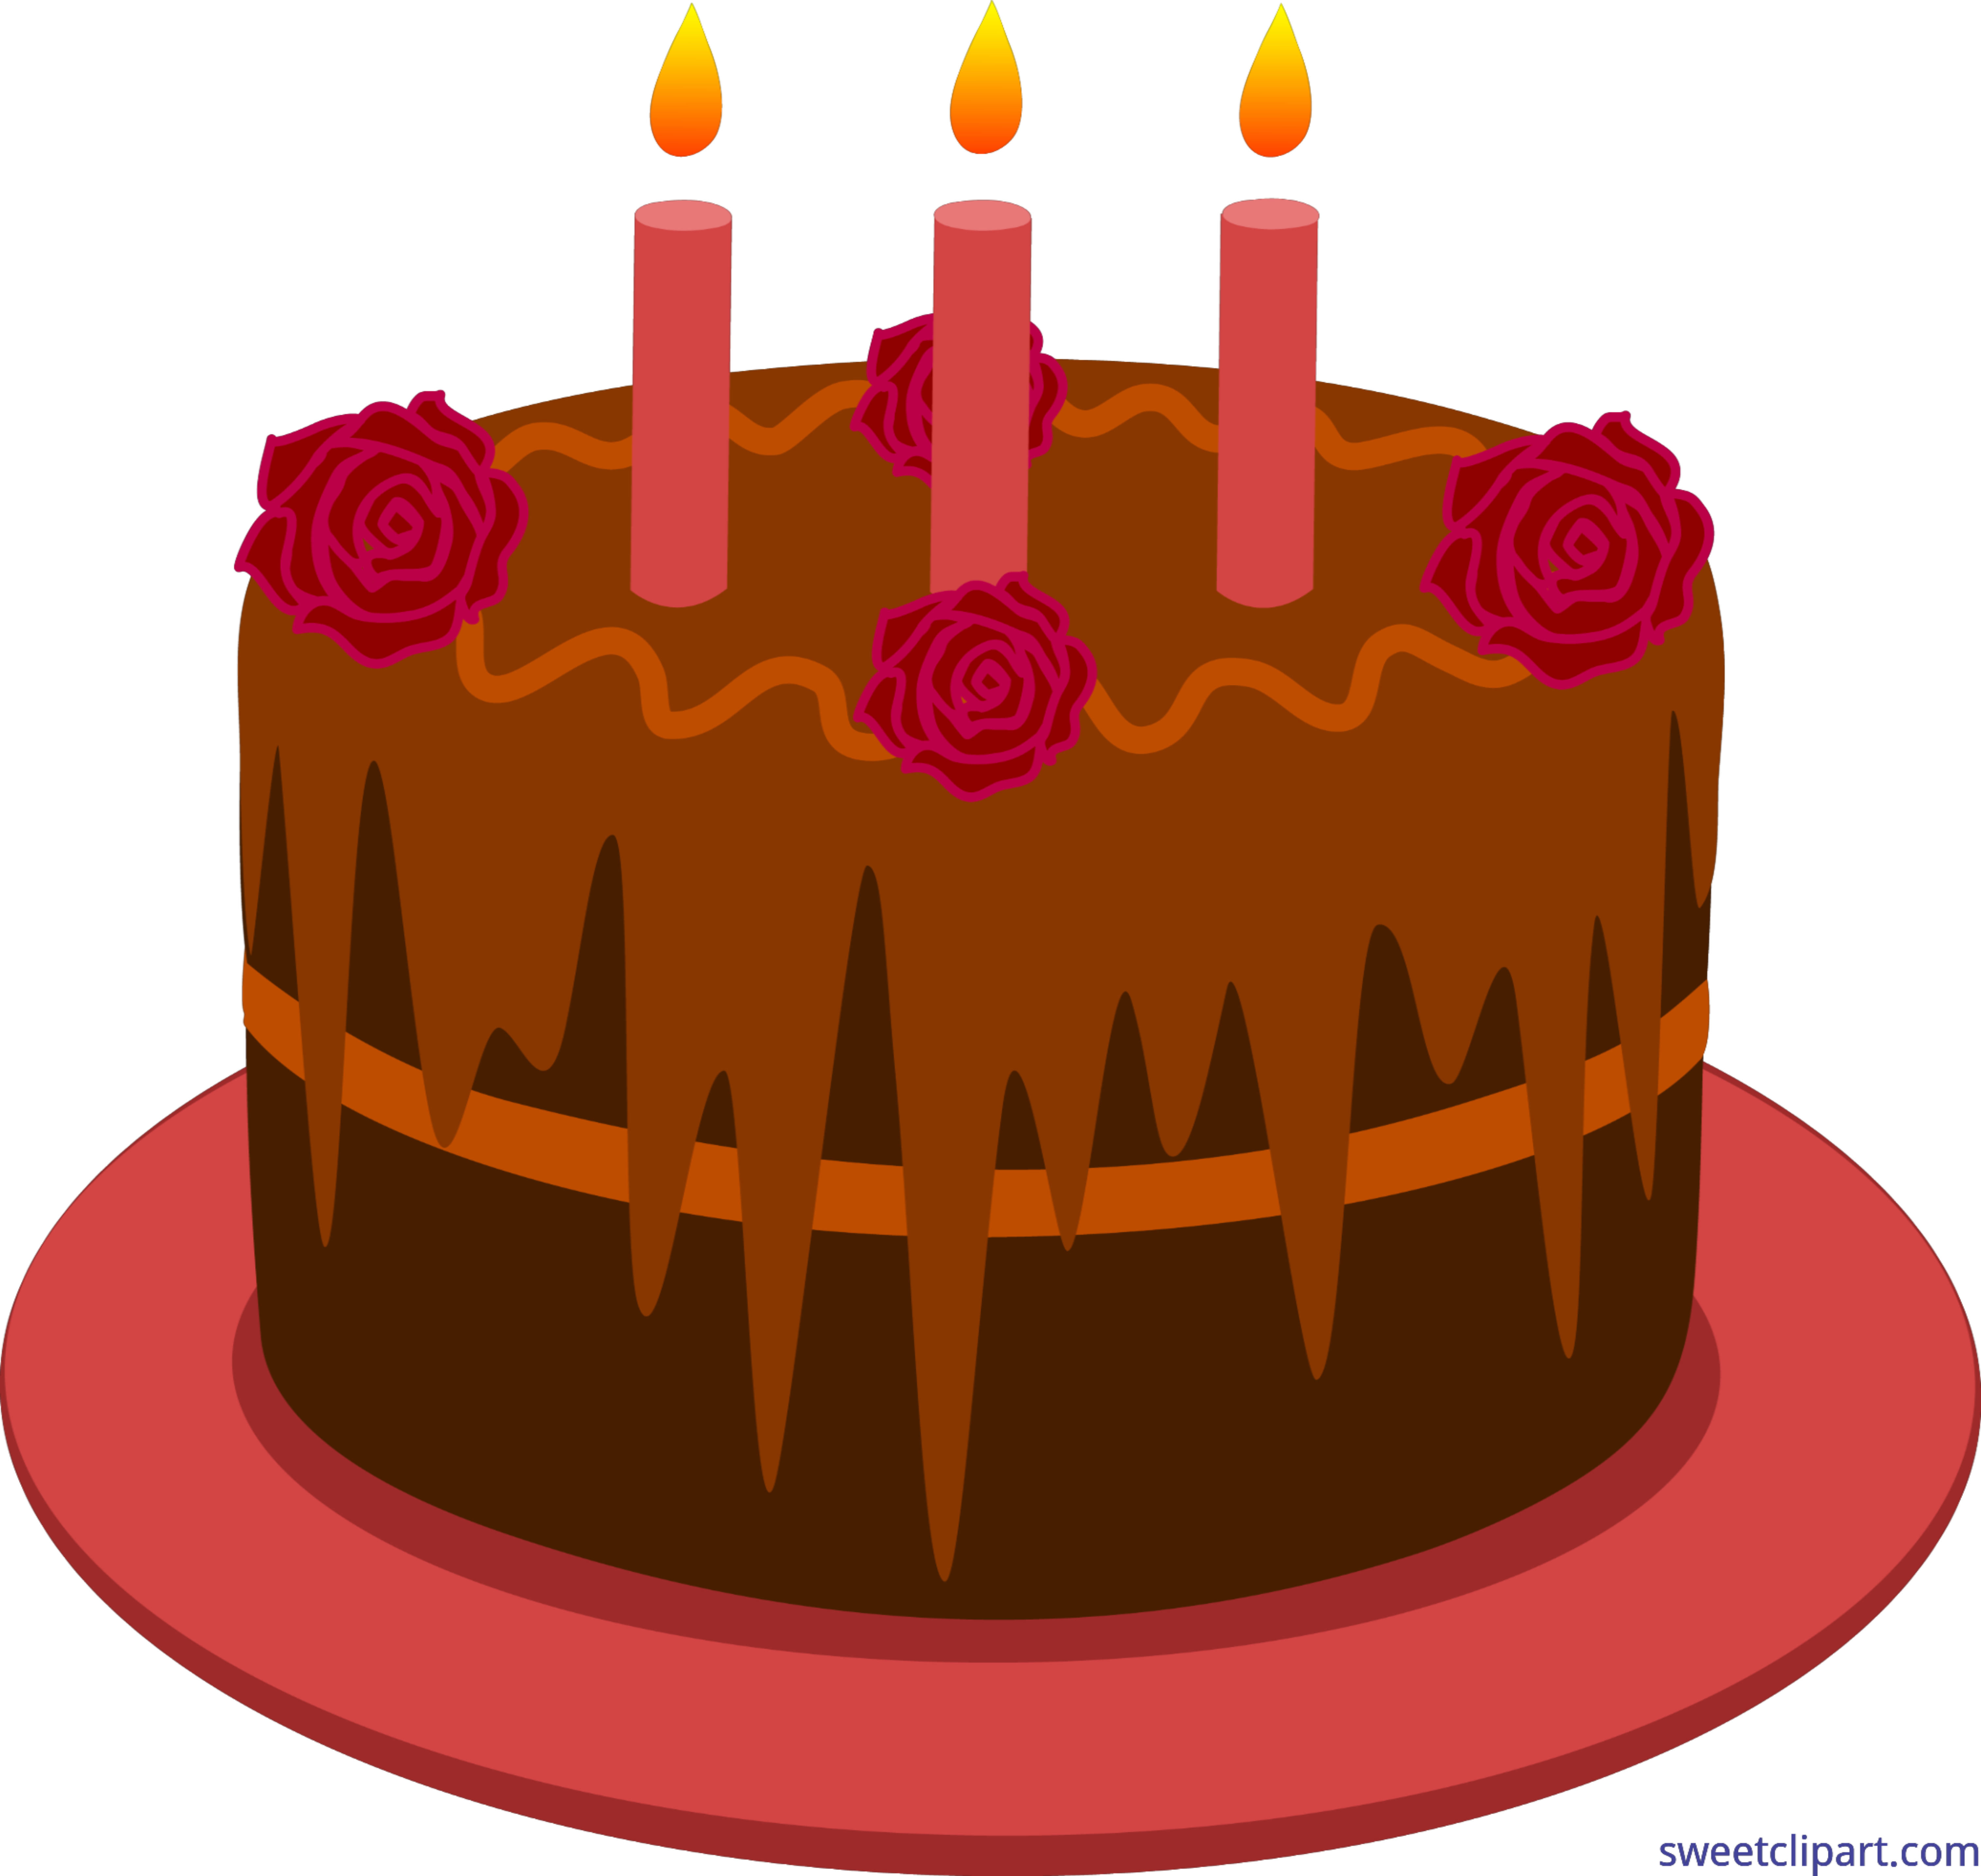 Drawing candles cake. Chocolate birthday clip art